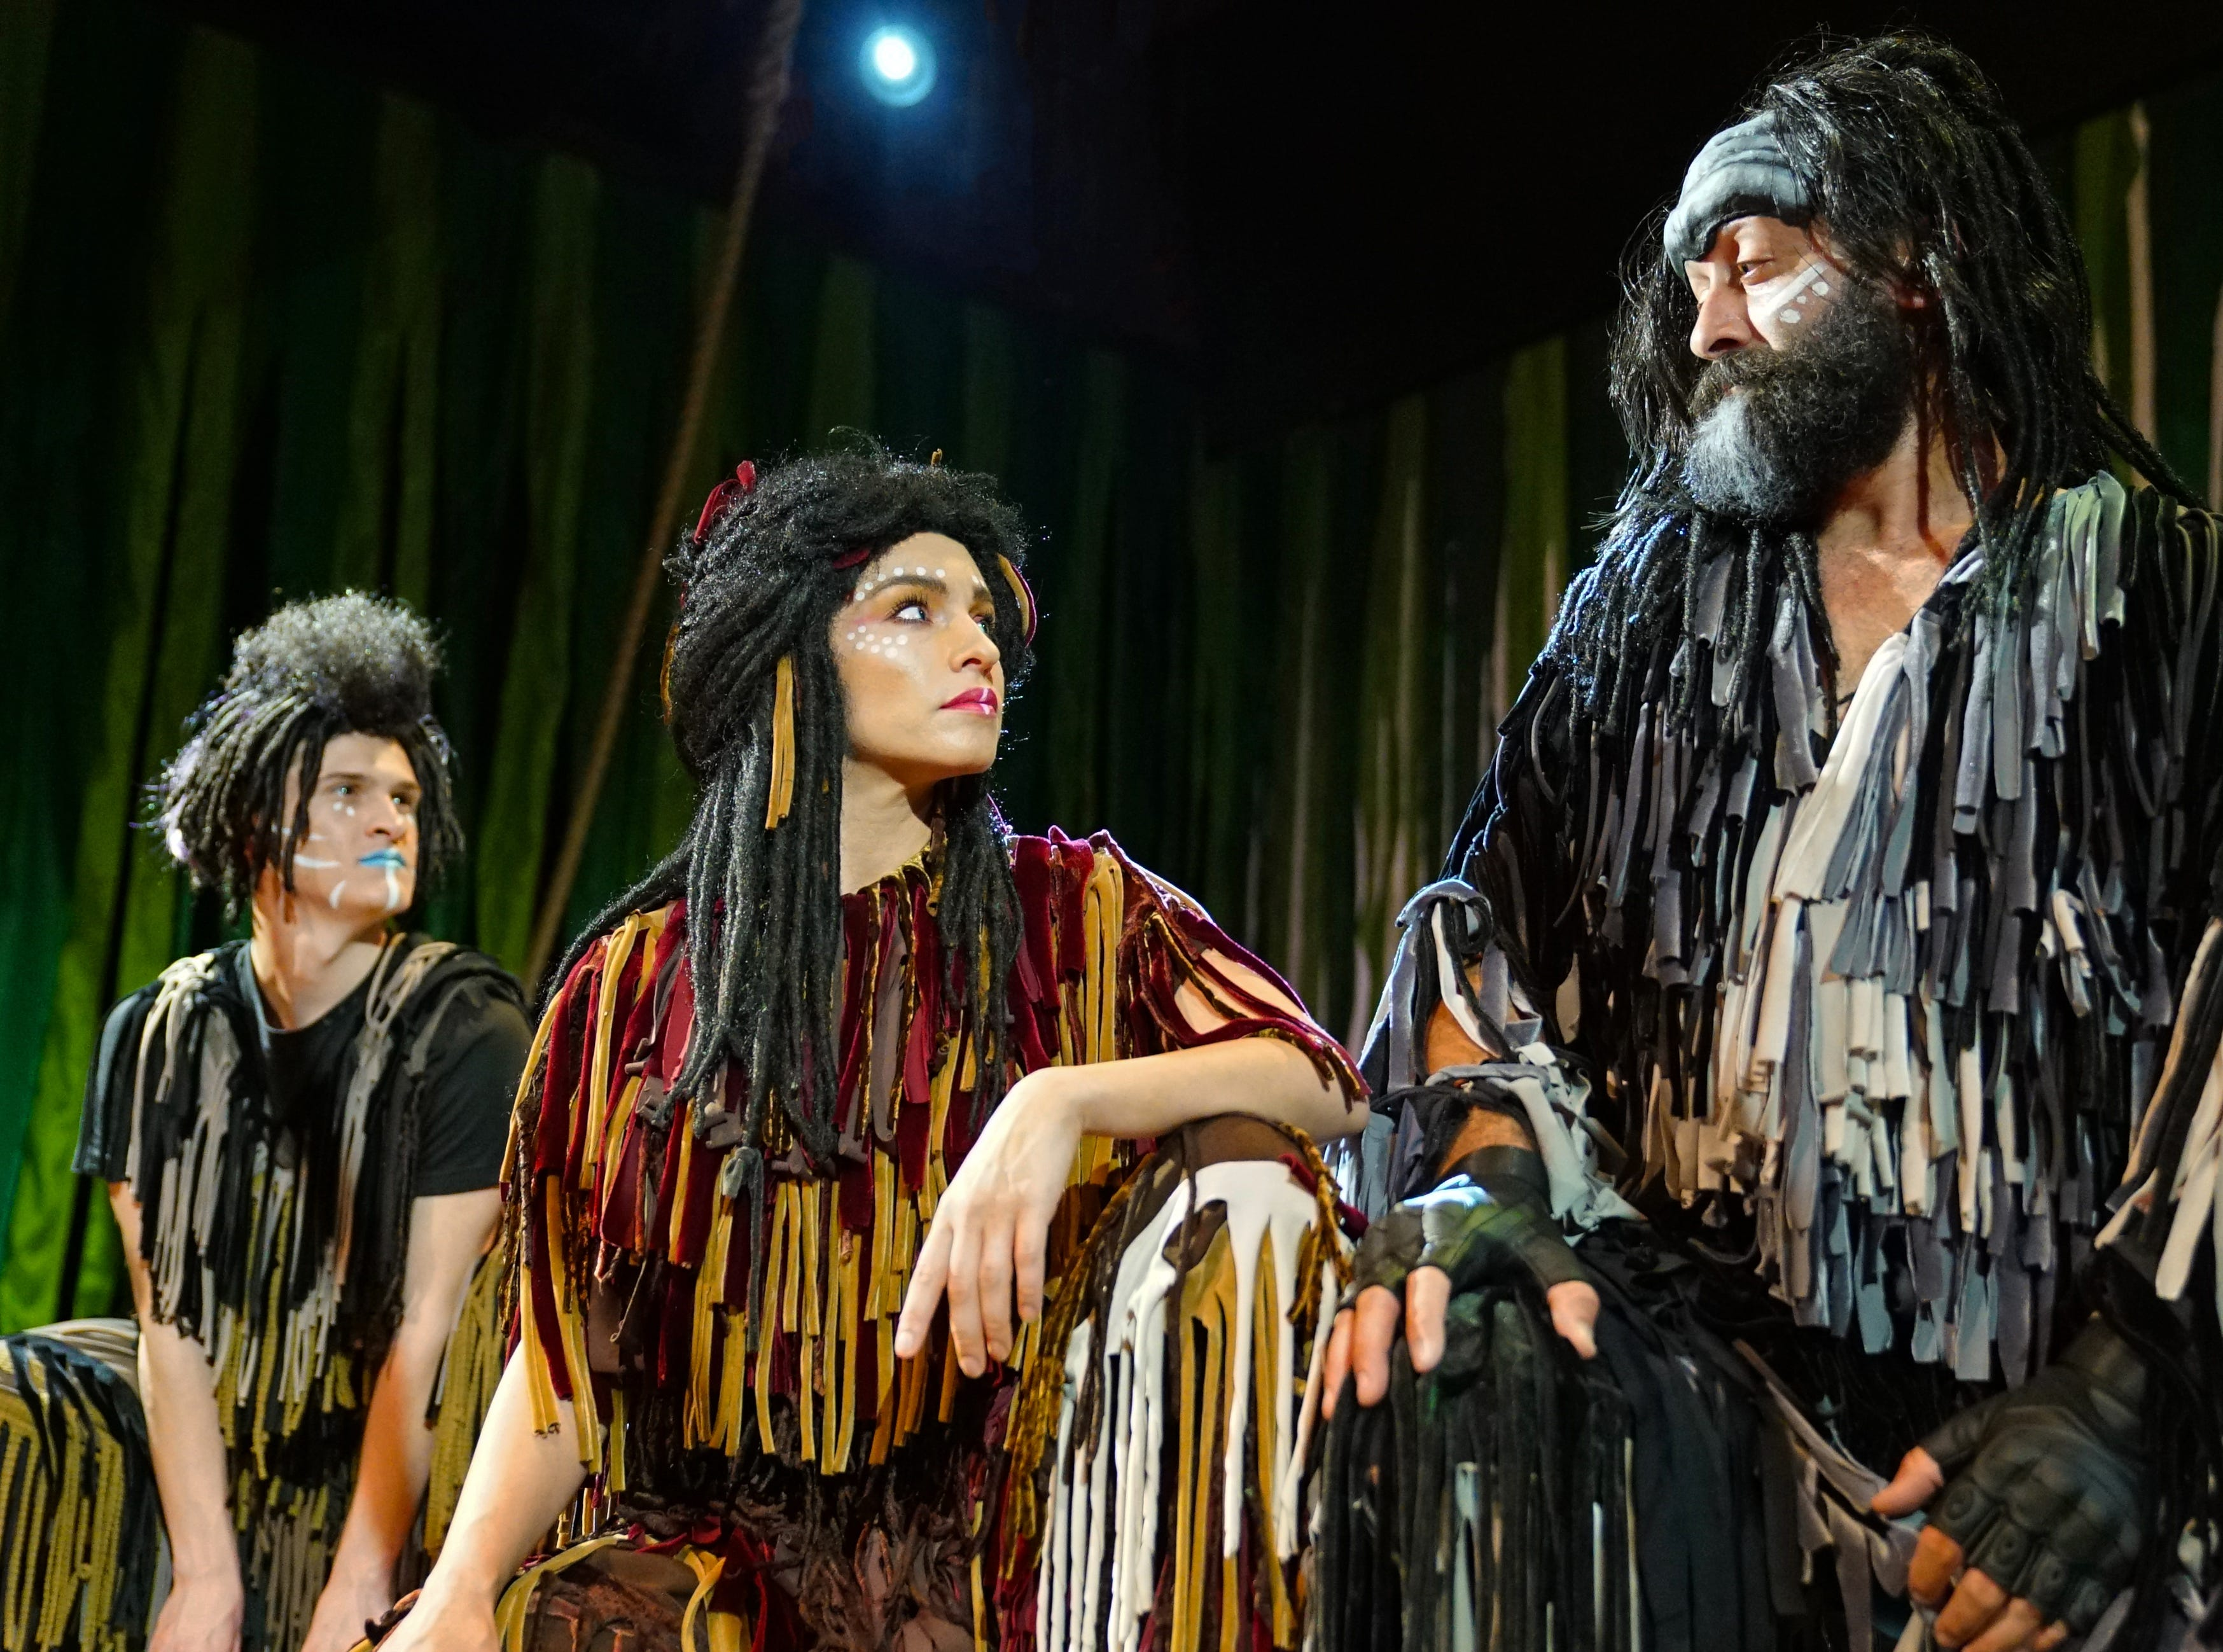 """Eric Barnum, left, plays """"Young Terk,"""" Josh Doyle plays """"Kerchek"""" and Mahalia Gronigan plays """"Kala"""" in """"Tarzan,"""" the stage musical based on the Disney film on stage at the Henegar Center in Melbourne through March 24th. For tickets or more information, visit henegar.org"""